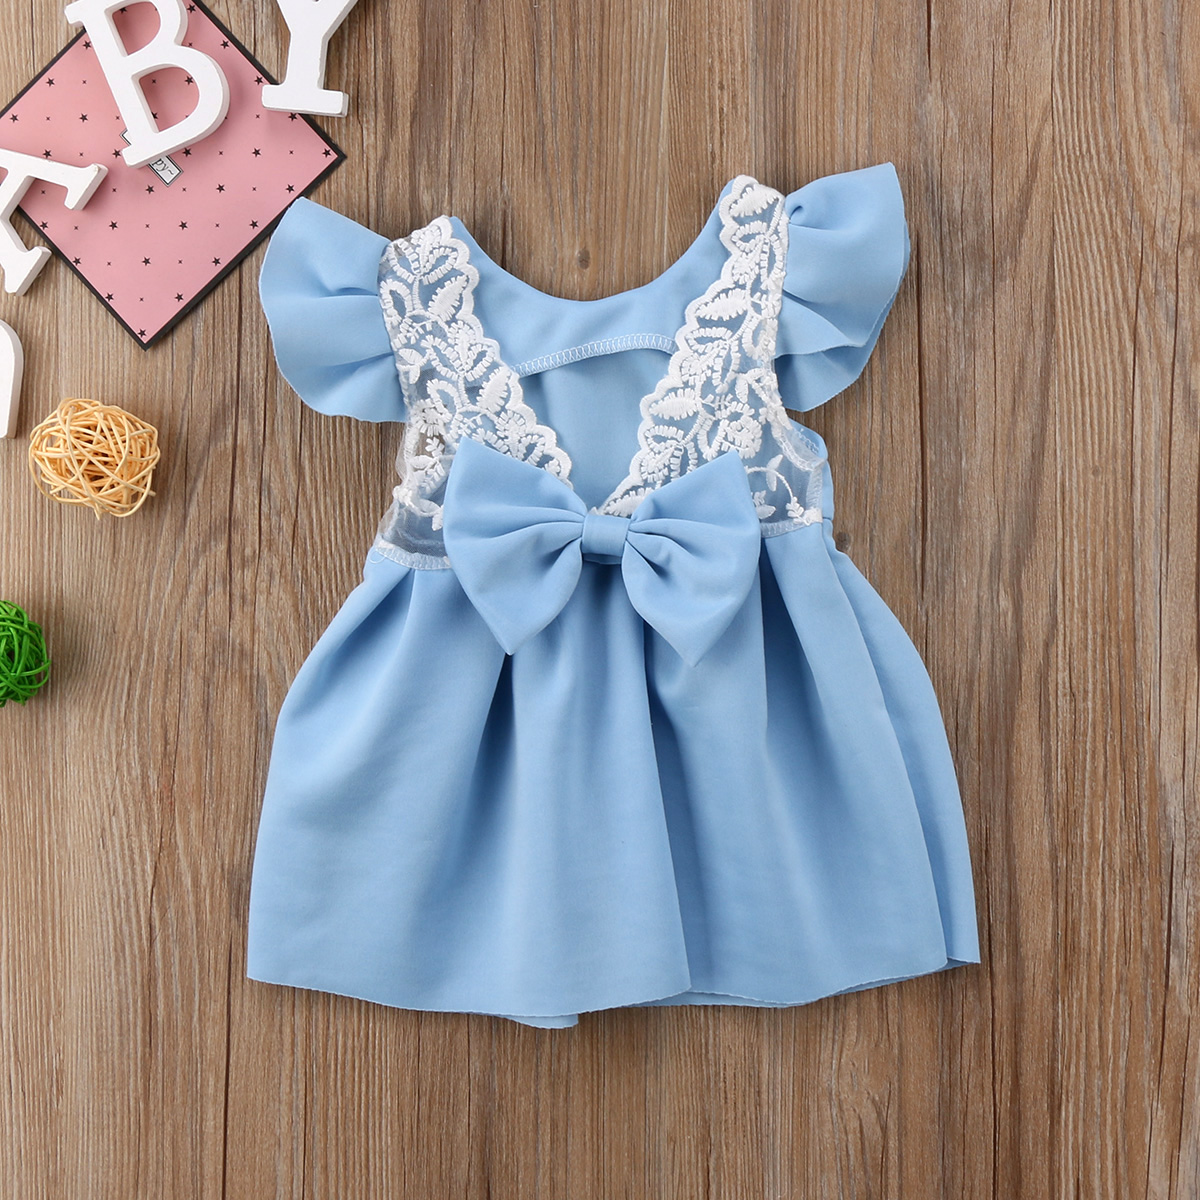 pudcoco Tops Bow Lace Ball Gown Tutu Party Dress Sundress